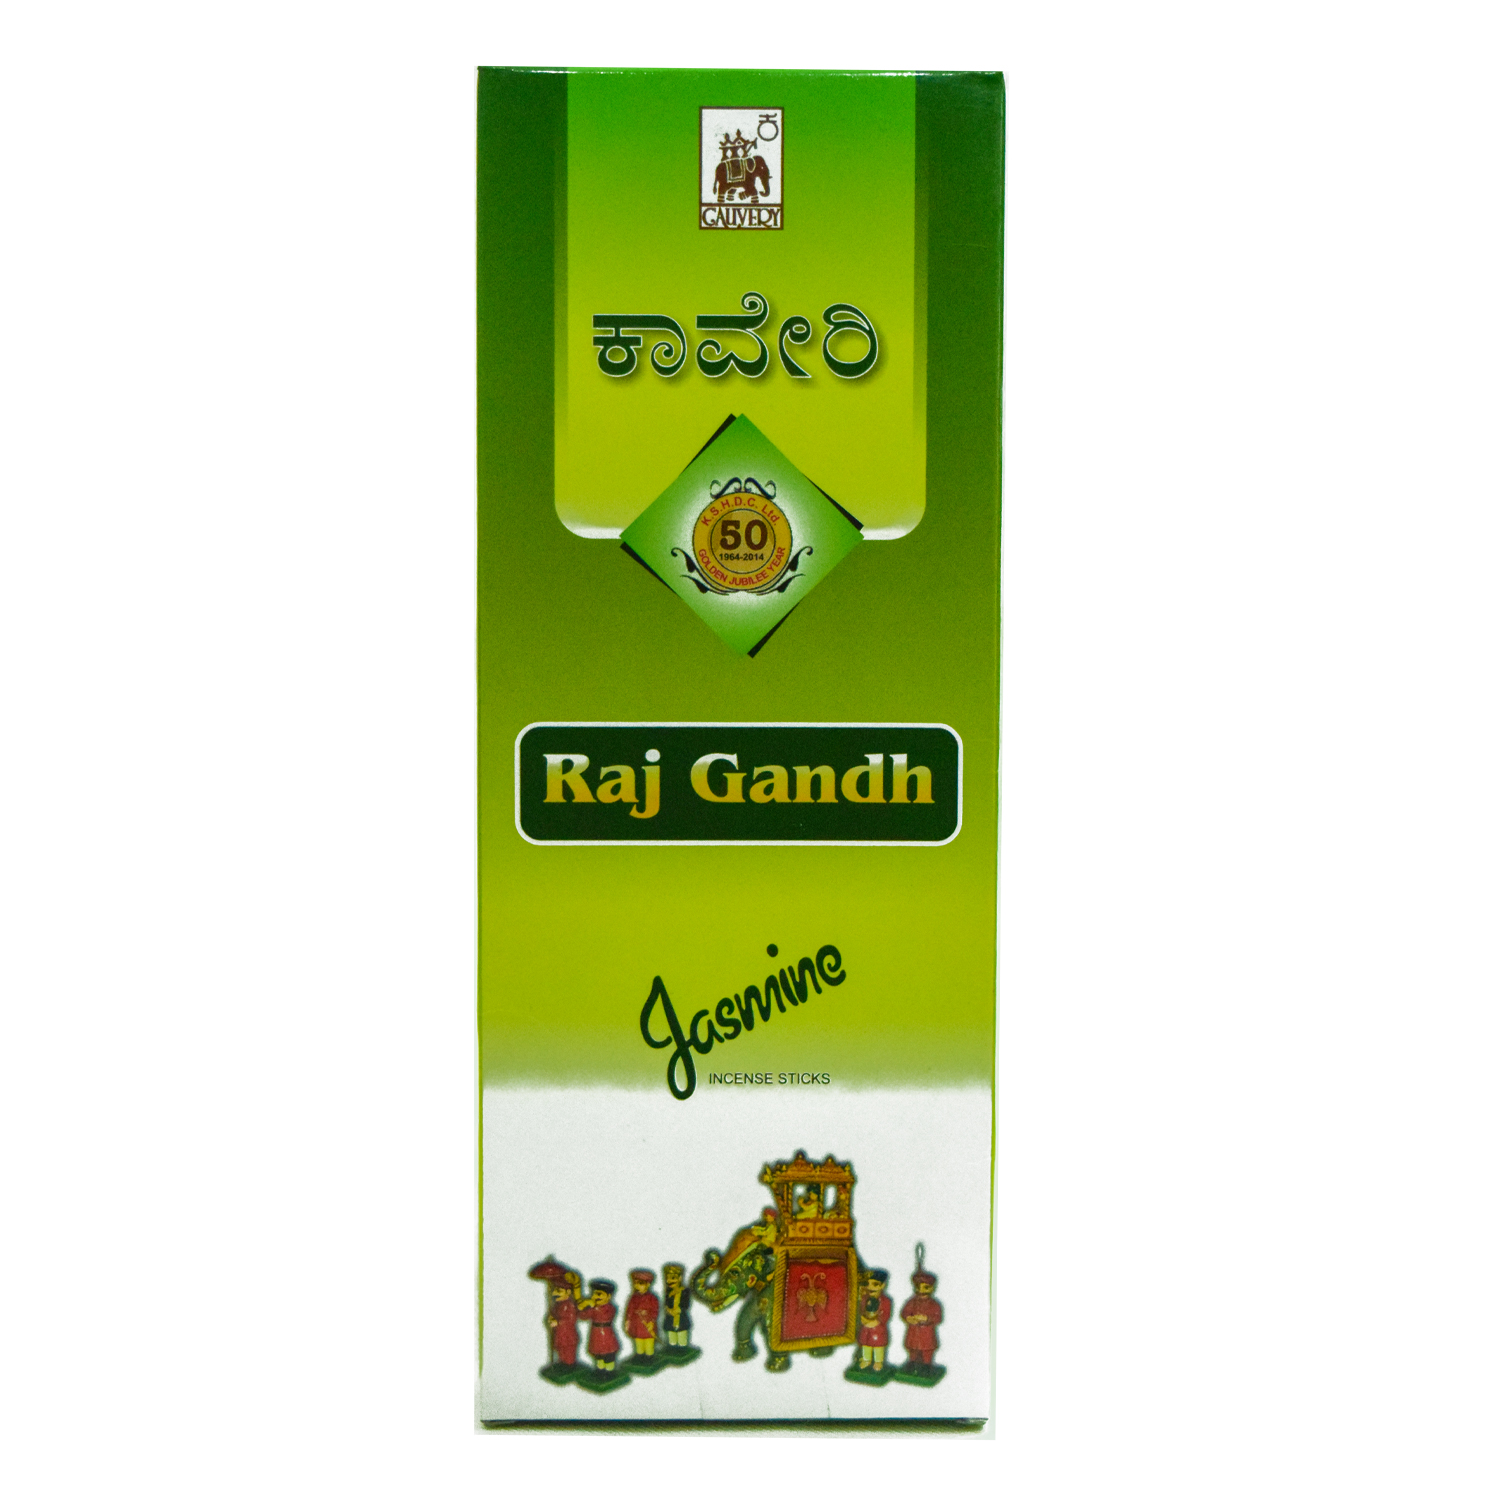 Cauvery Raj Gandh Jasmine Incense Sticks